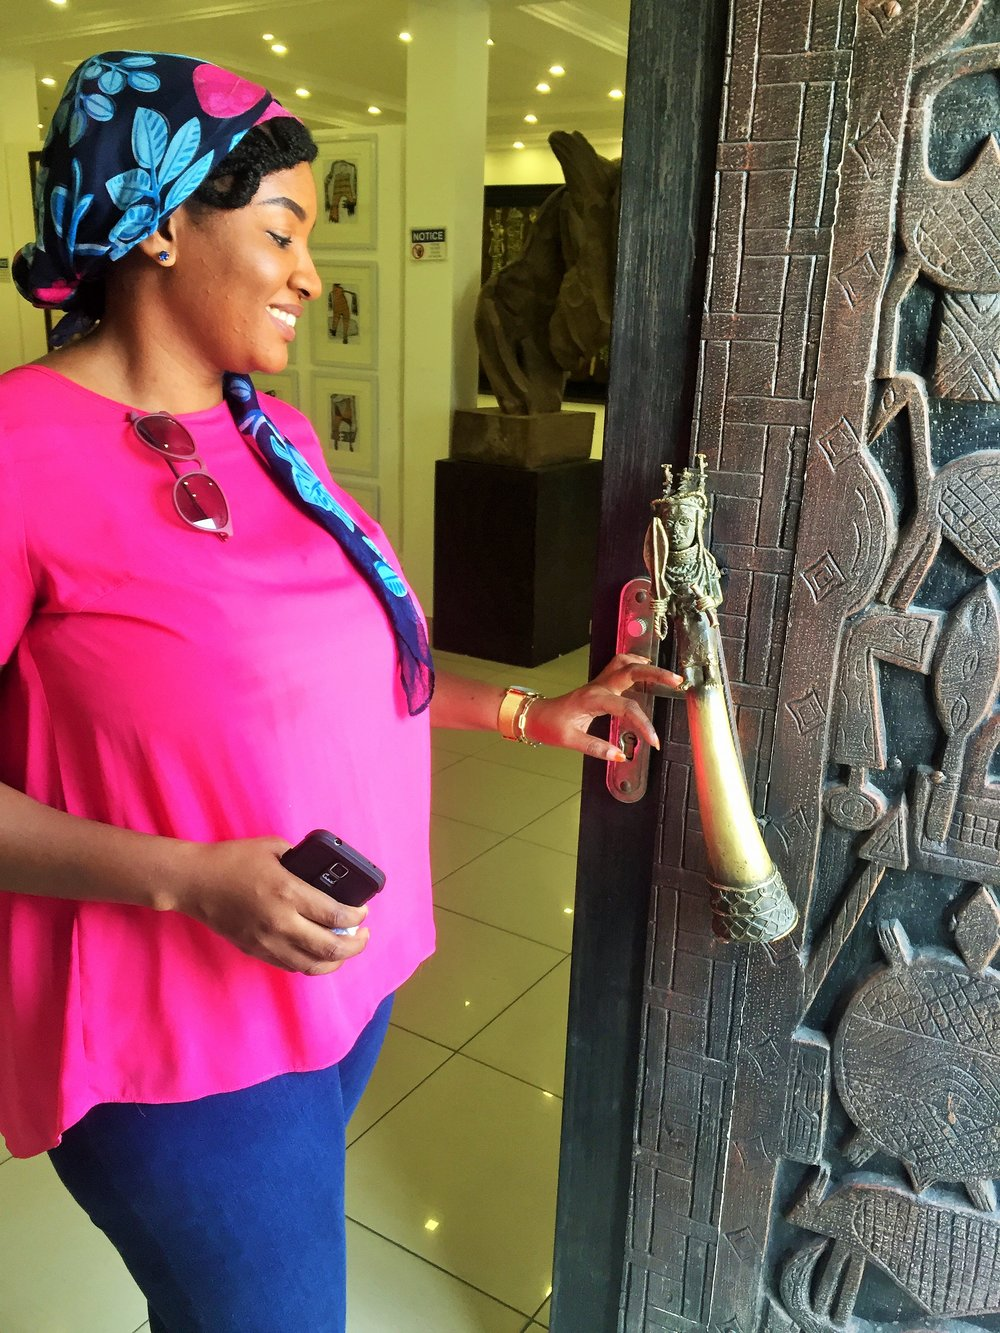 Hasana and I, checking out the fascinating and unique door & door handle